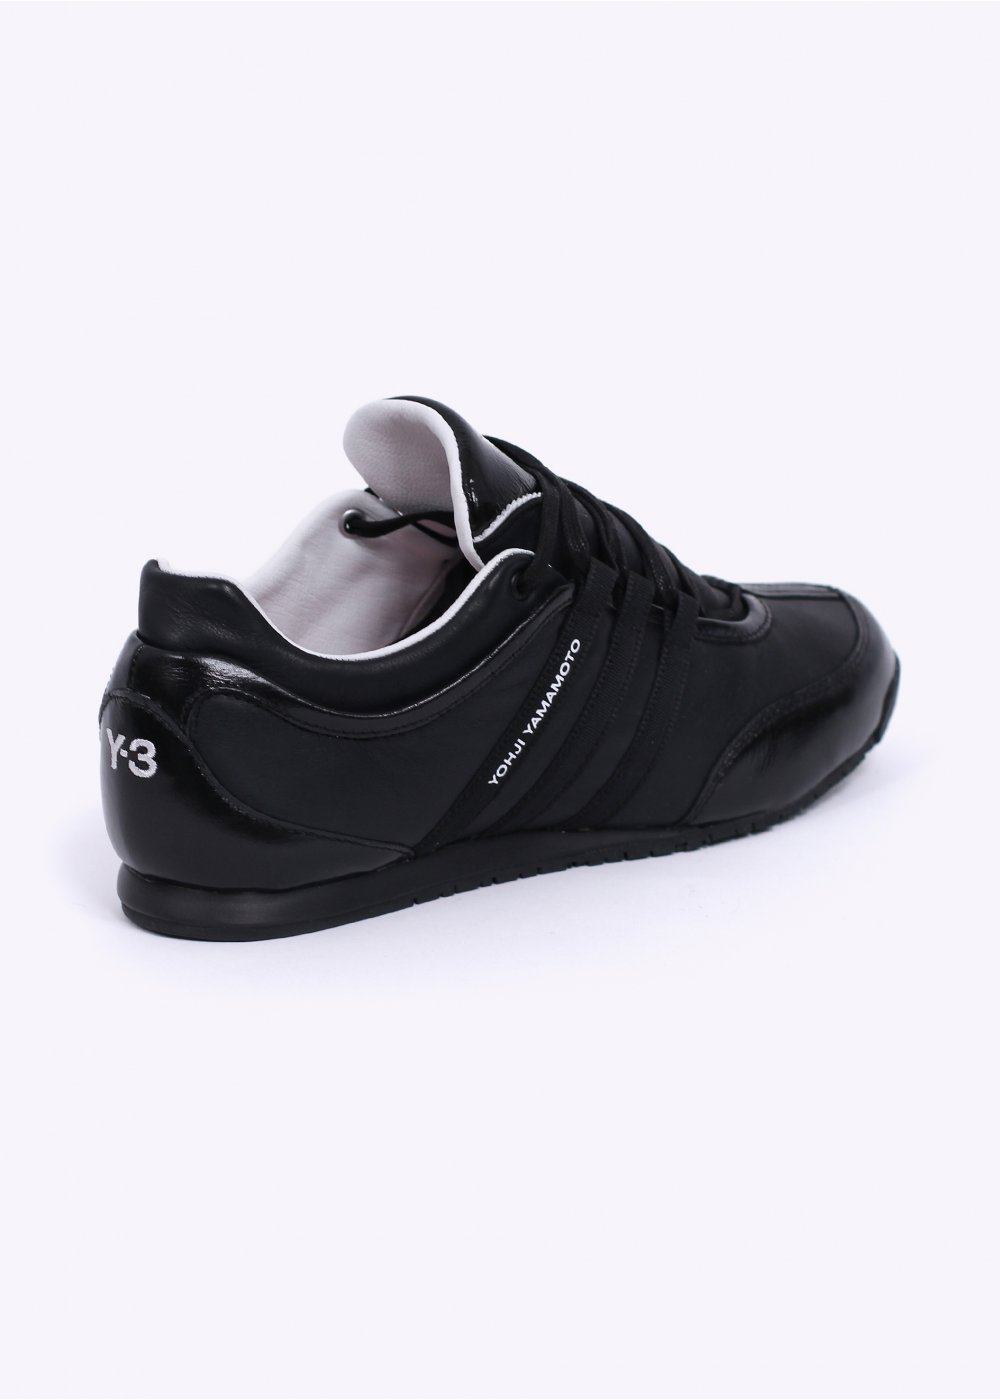 cheap y3 trainers sale